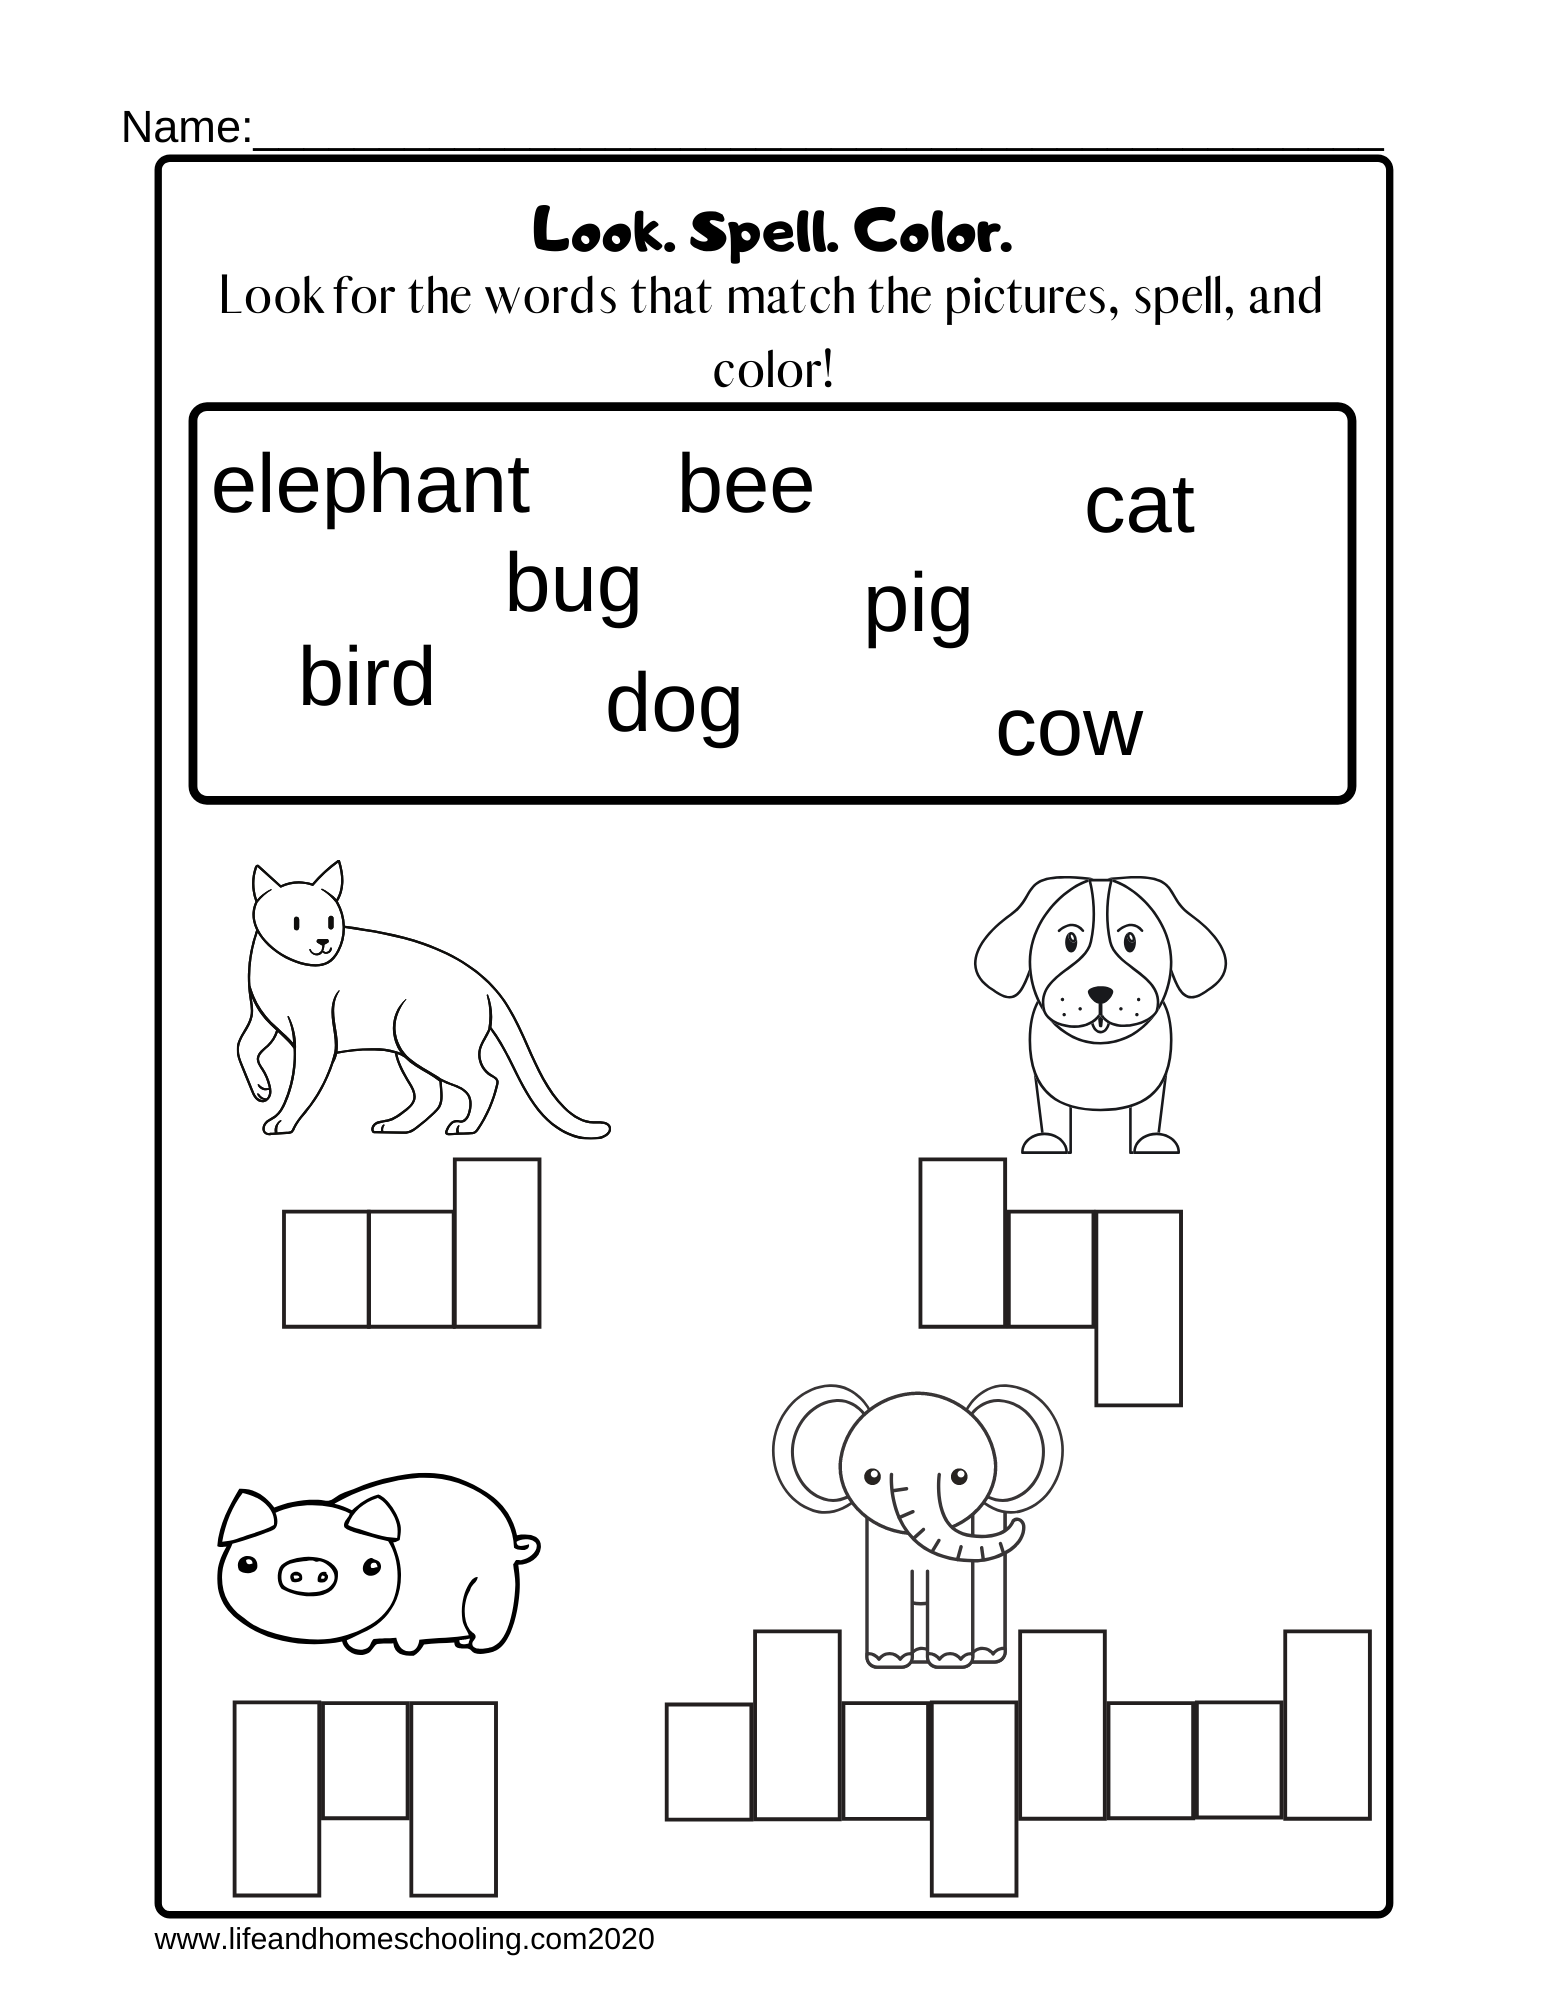 Kindergarten Spelling Worksheet - Madebyteachers